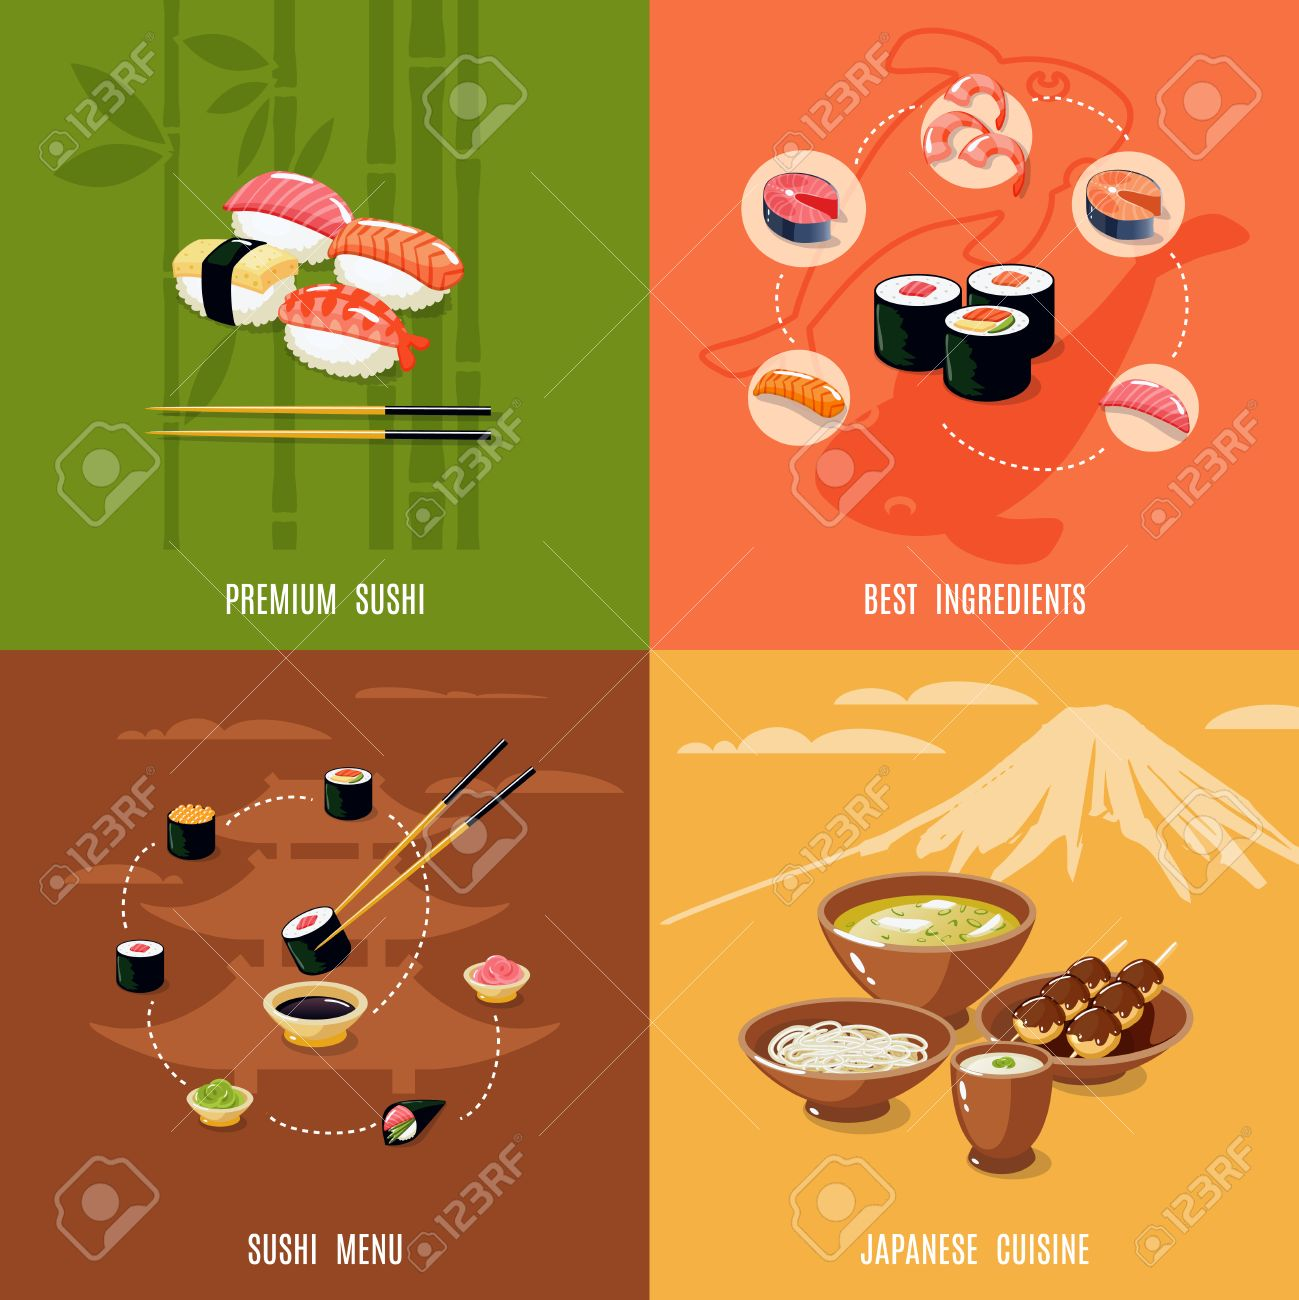 Asian food design concept with premium sushi best ingredients menu japanese  cuisine isolated vector illustration Stock